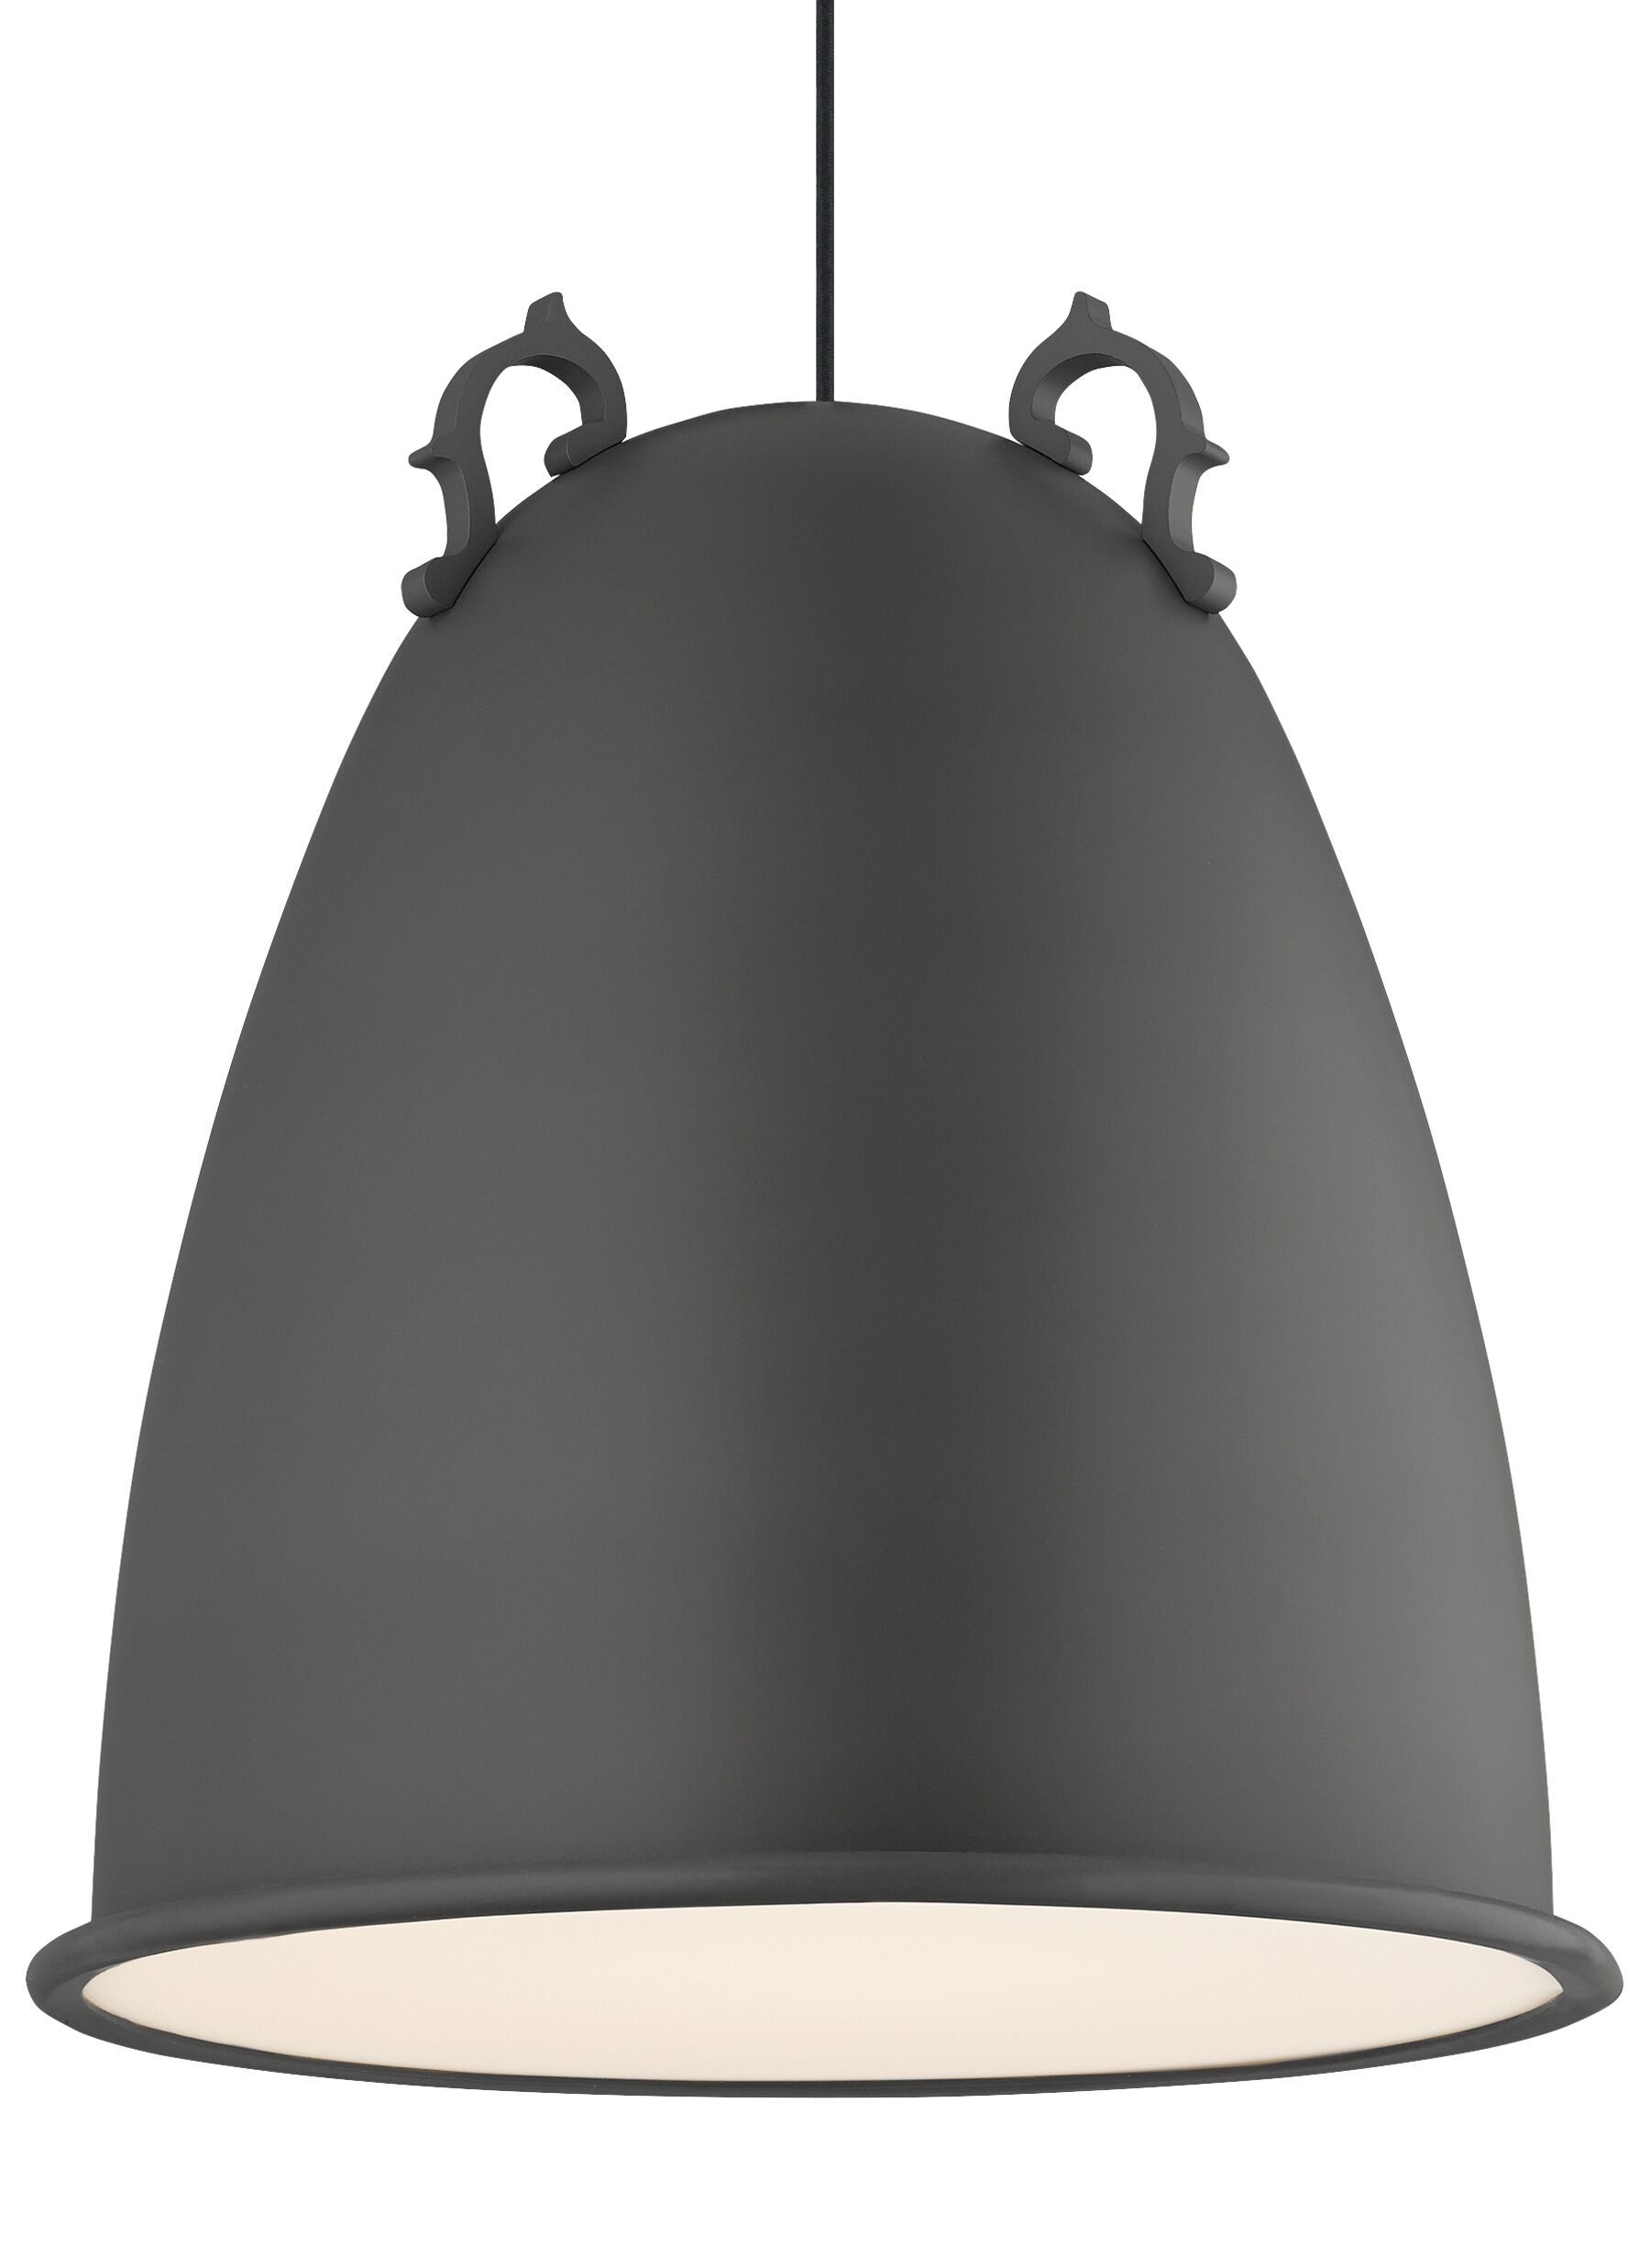 Malka 1-Light Bell Pendant Finish: Rubberized Charcoal Gray, Bulb Type: Incandescent 120V